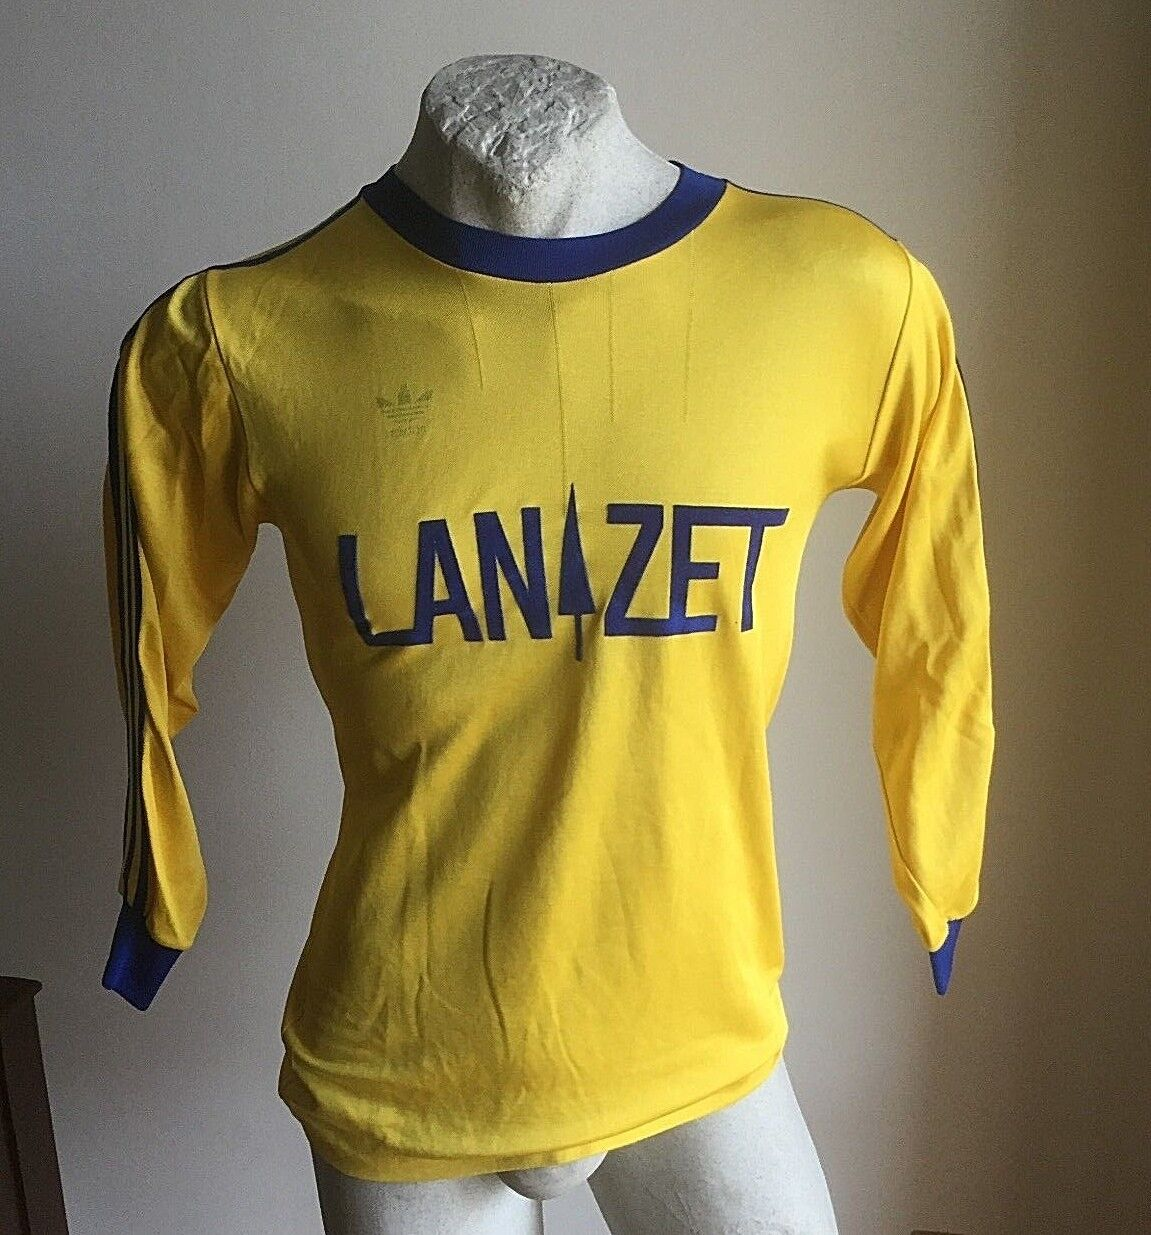 MAGLIA CALCIO ADIDAS LANZET TRIKOT FOOTBALL SHIRT JERSEY 7VINTAGE WEST GERMANY